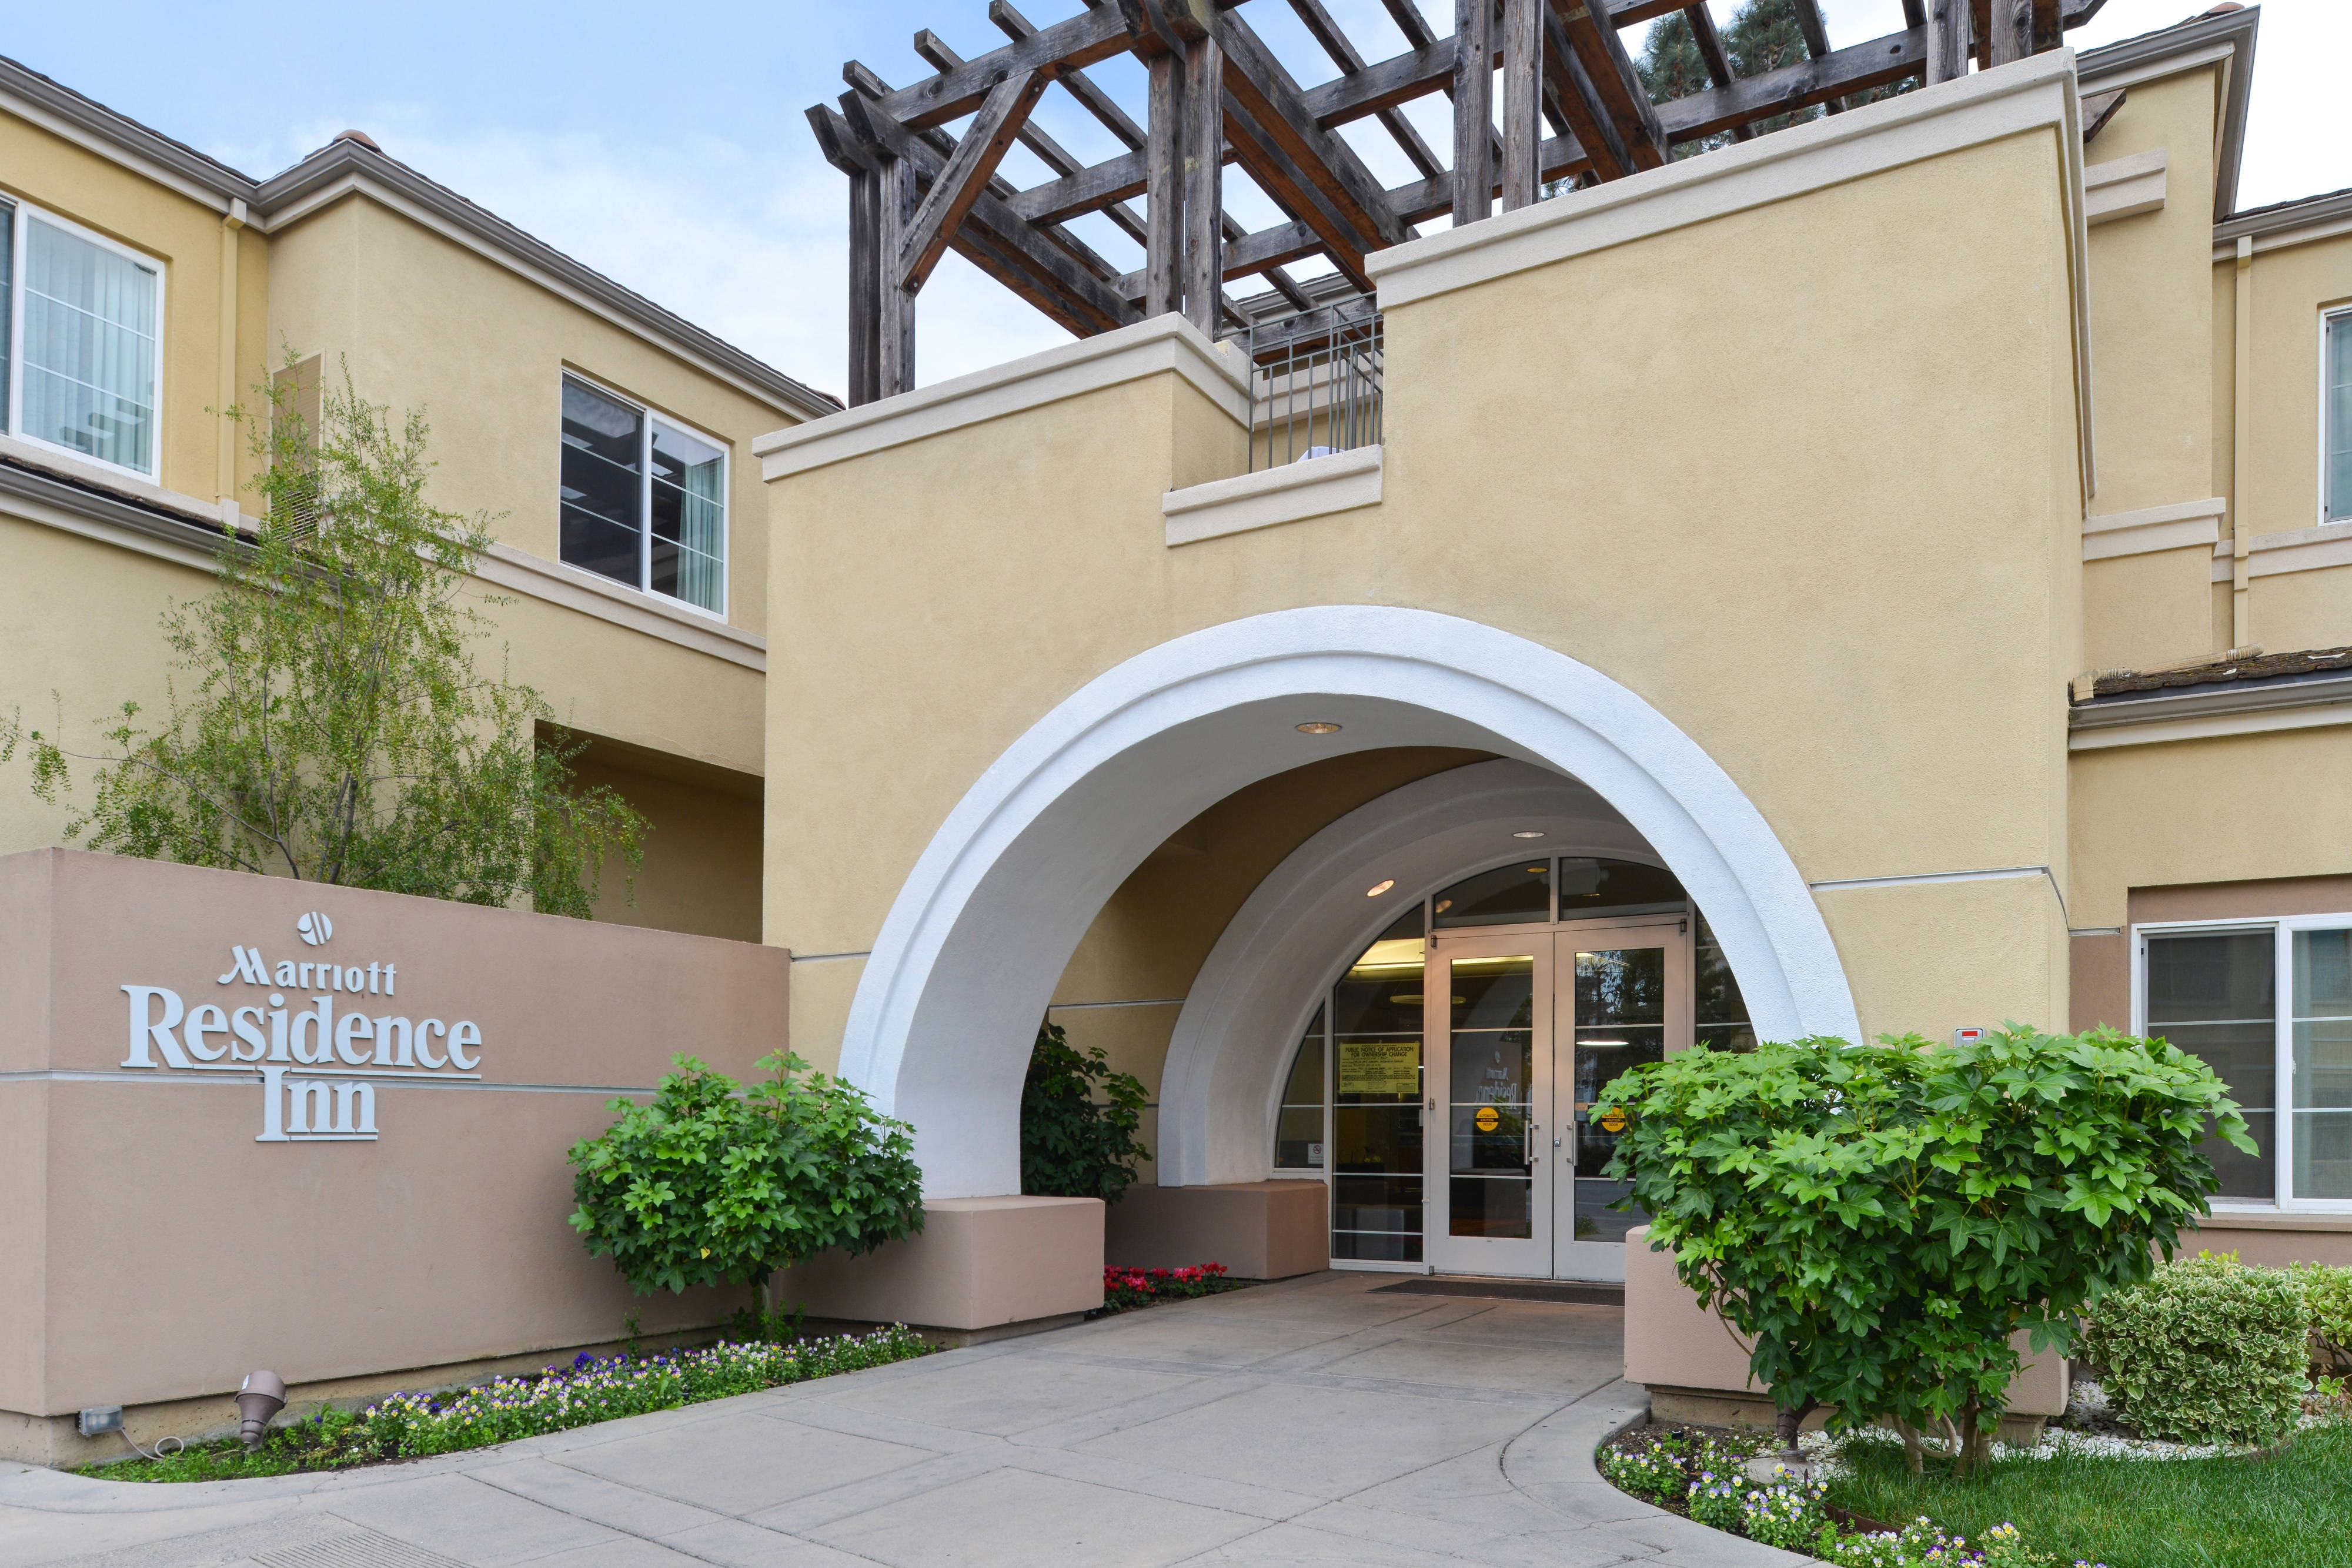 Marriott Residence Inn in heart of Silicon Valley near Google and Facebook